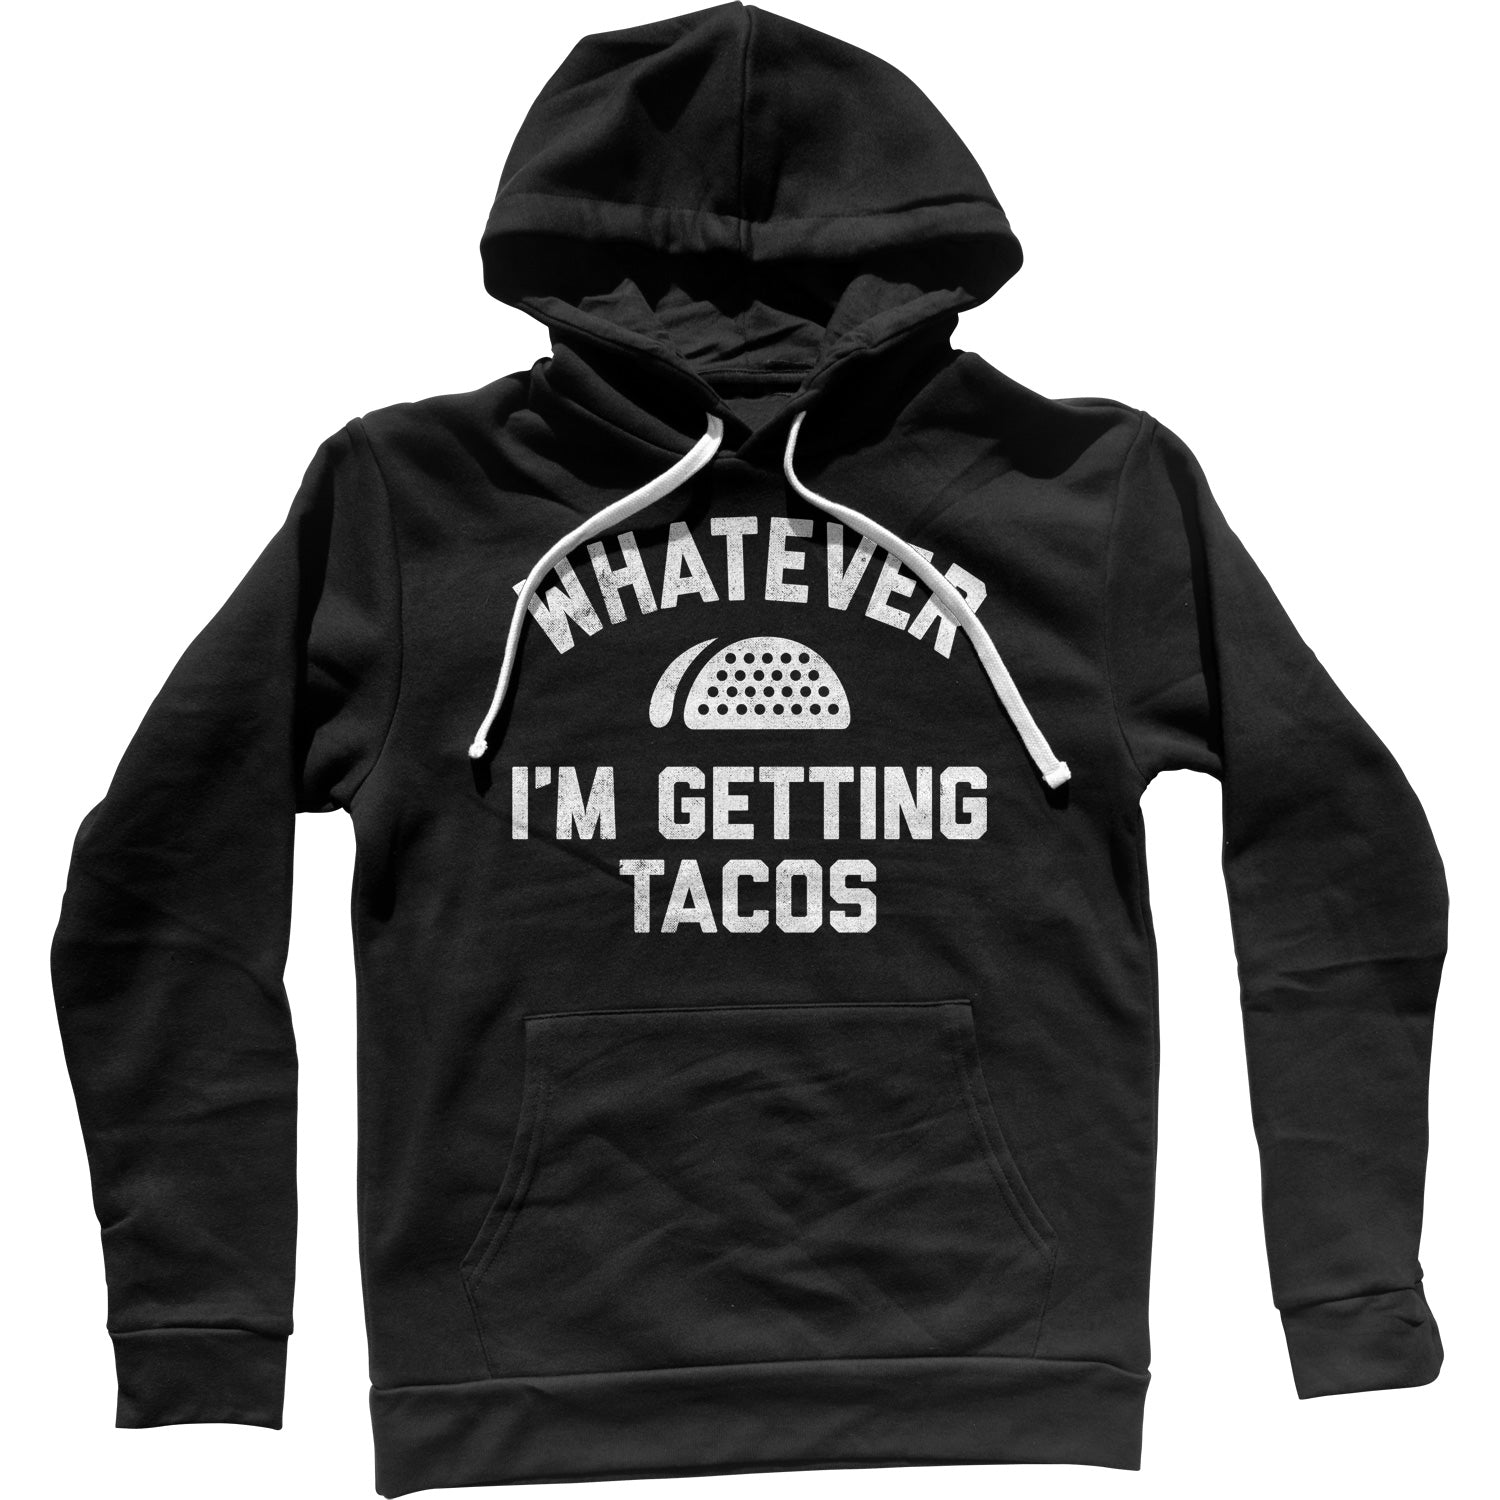 Whatever I'm Getting Tacos Unisex Hoodie